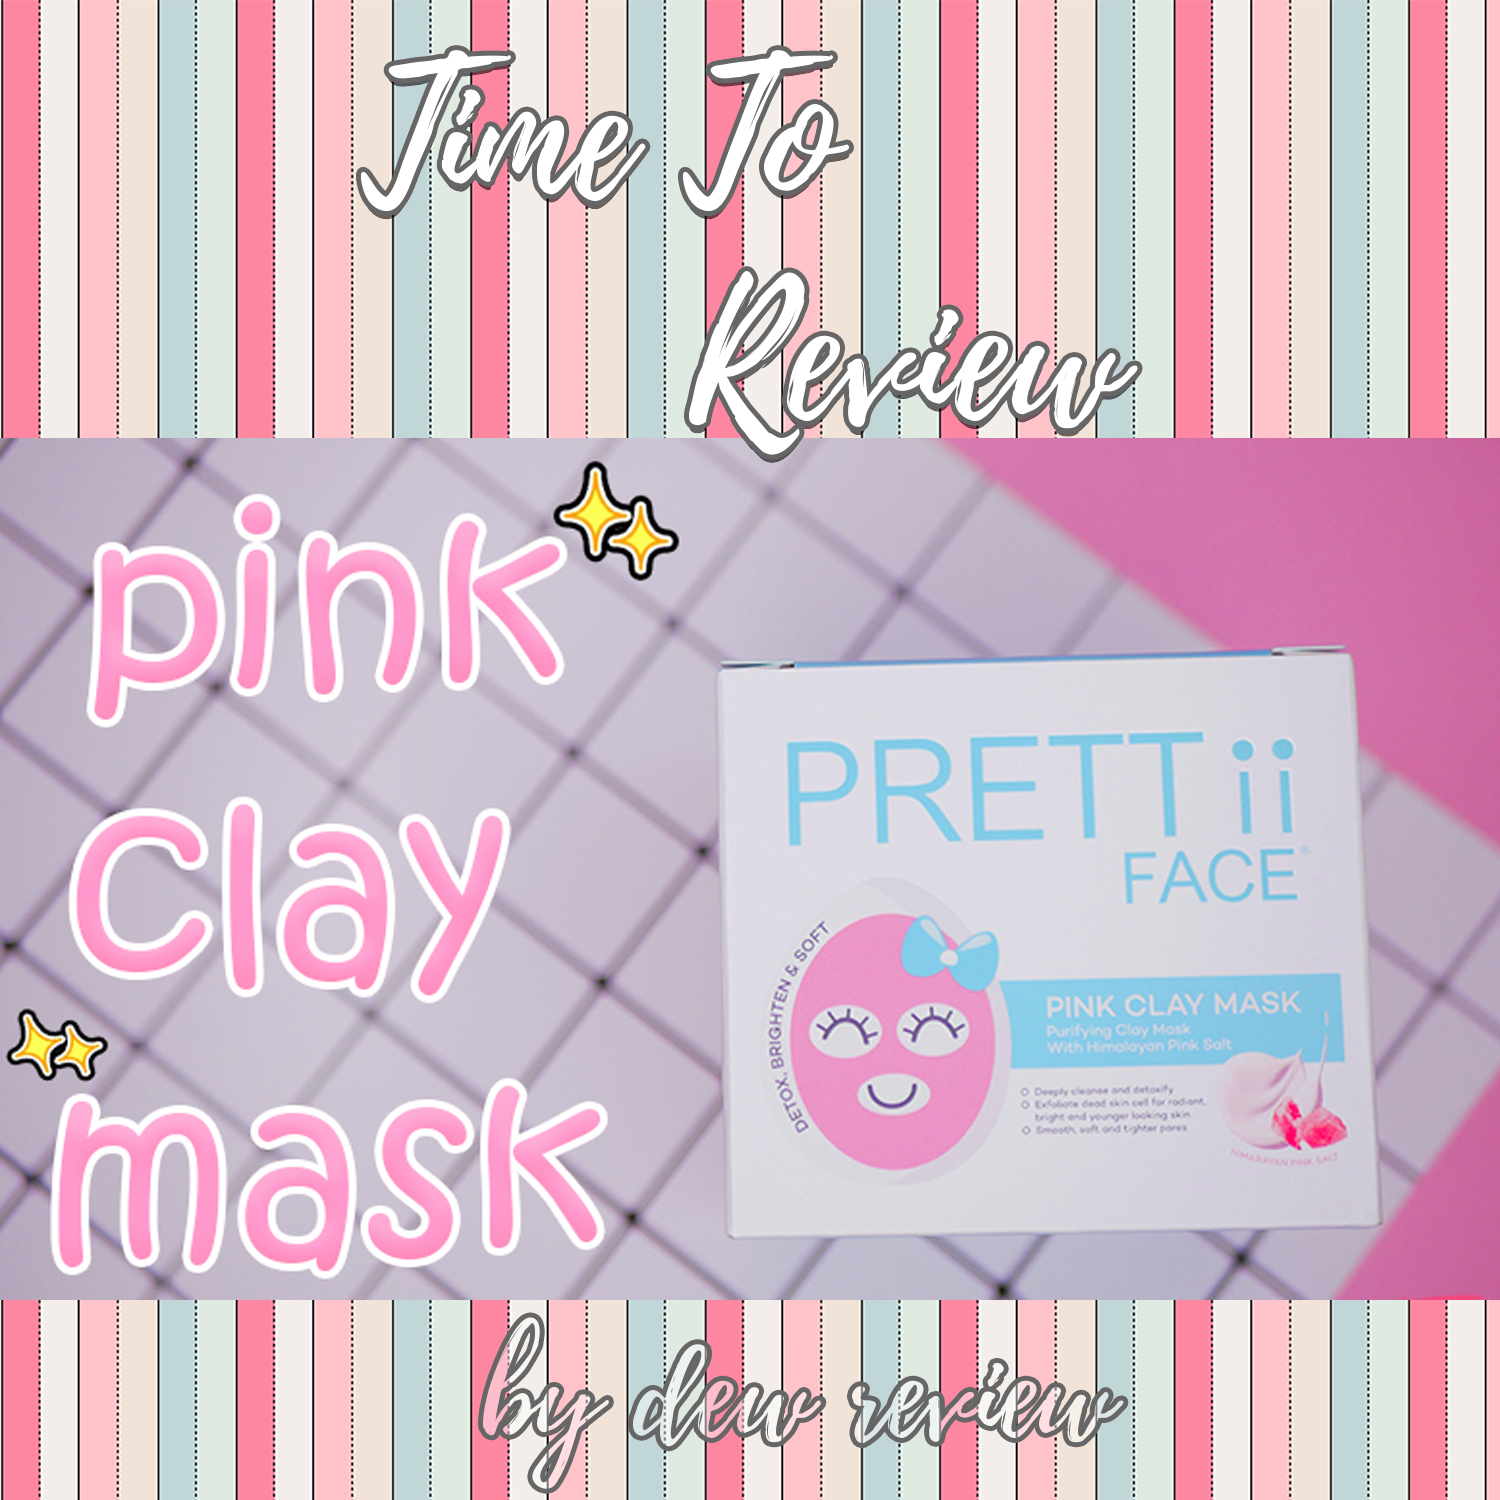 [Review] Prettii Face Pink Clay Mask